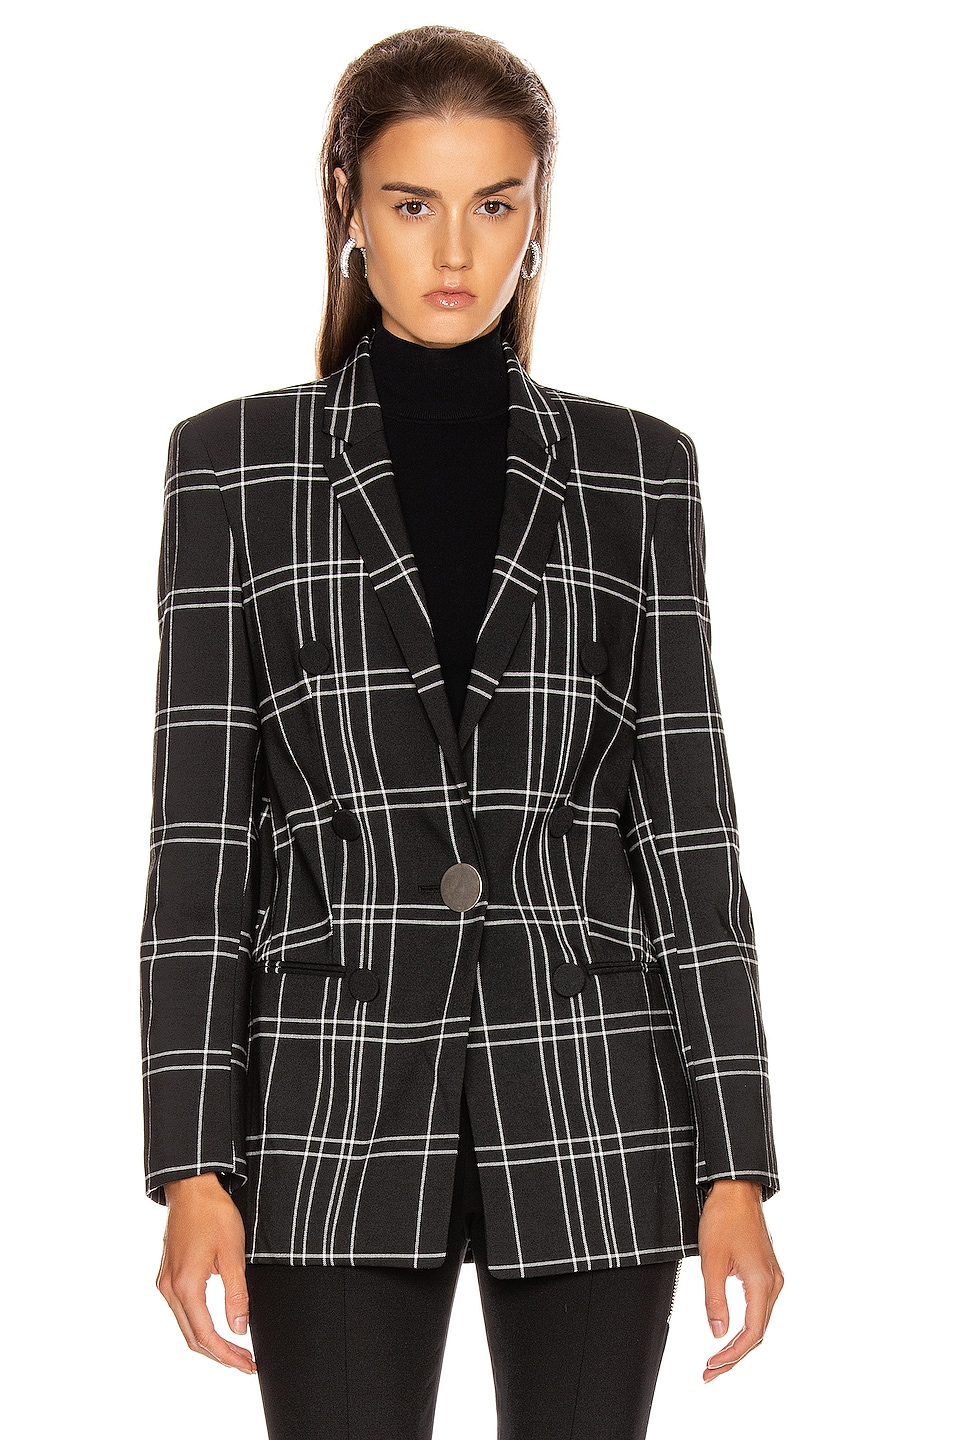 Image 2 of Alexander Wang Peaked Lapel Blazer with Leather Sleeves in Black & White Windowpane